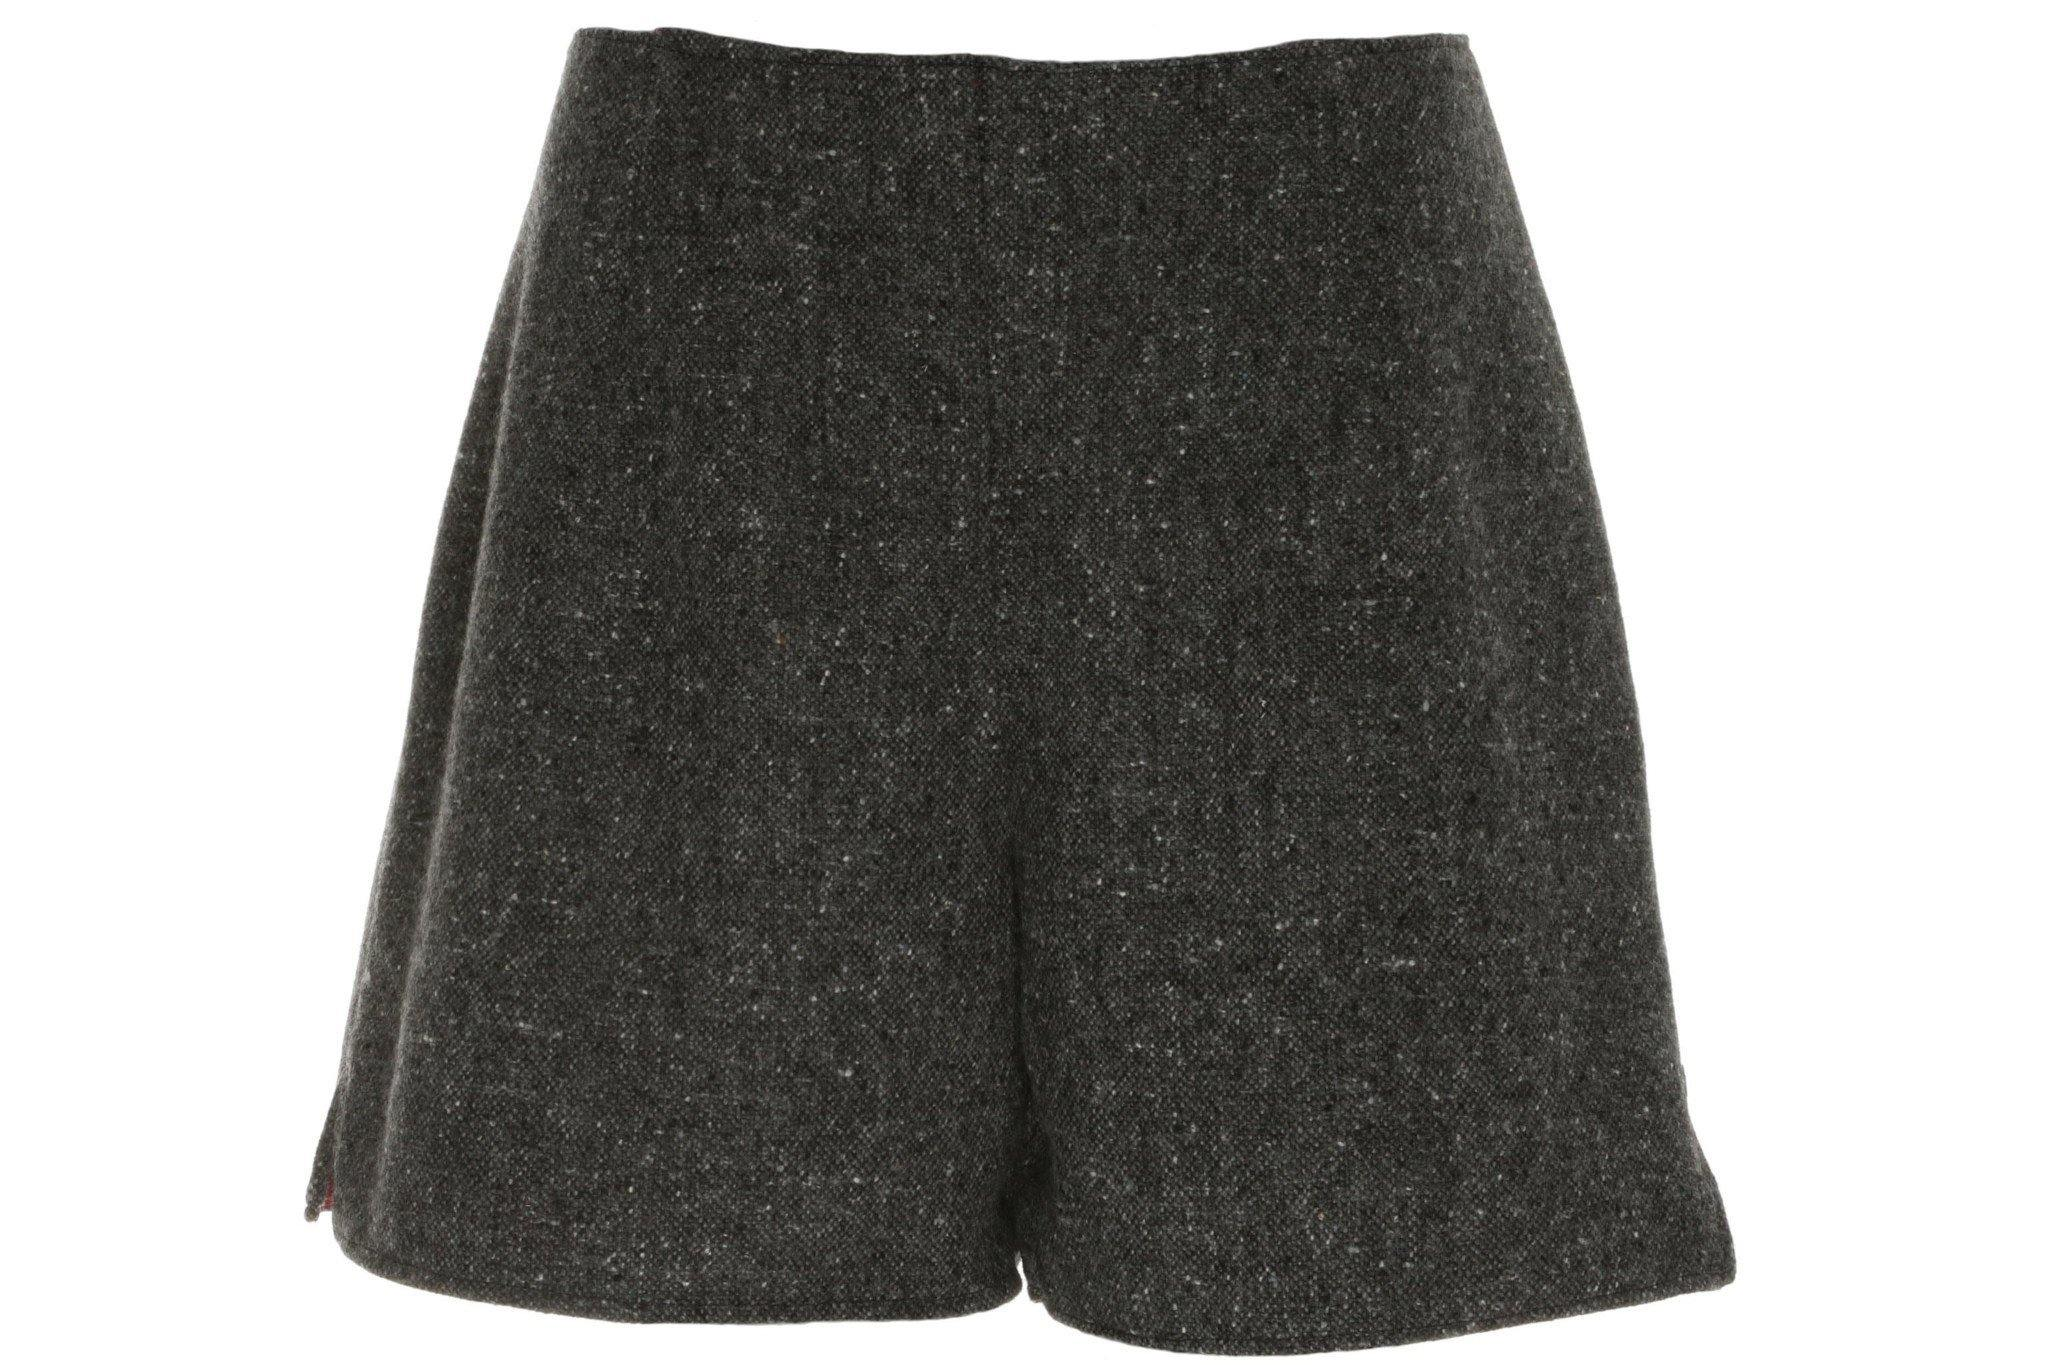 Donegal Tweed Shorts in Charcoal mohair/ merino tweed. Tweed Shorts Tweed.ie